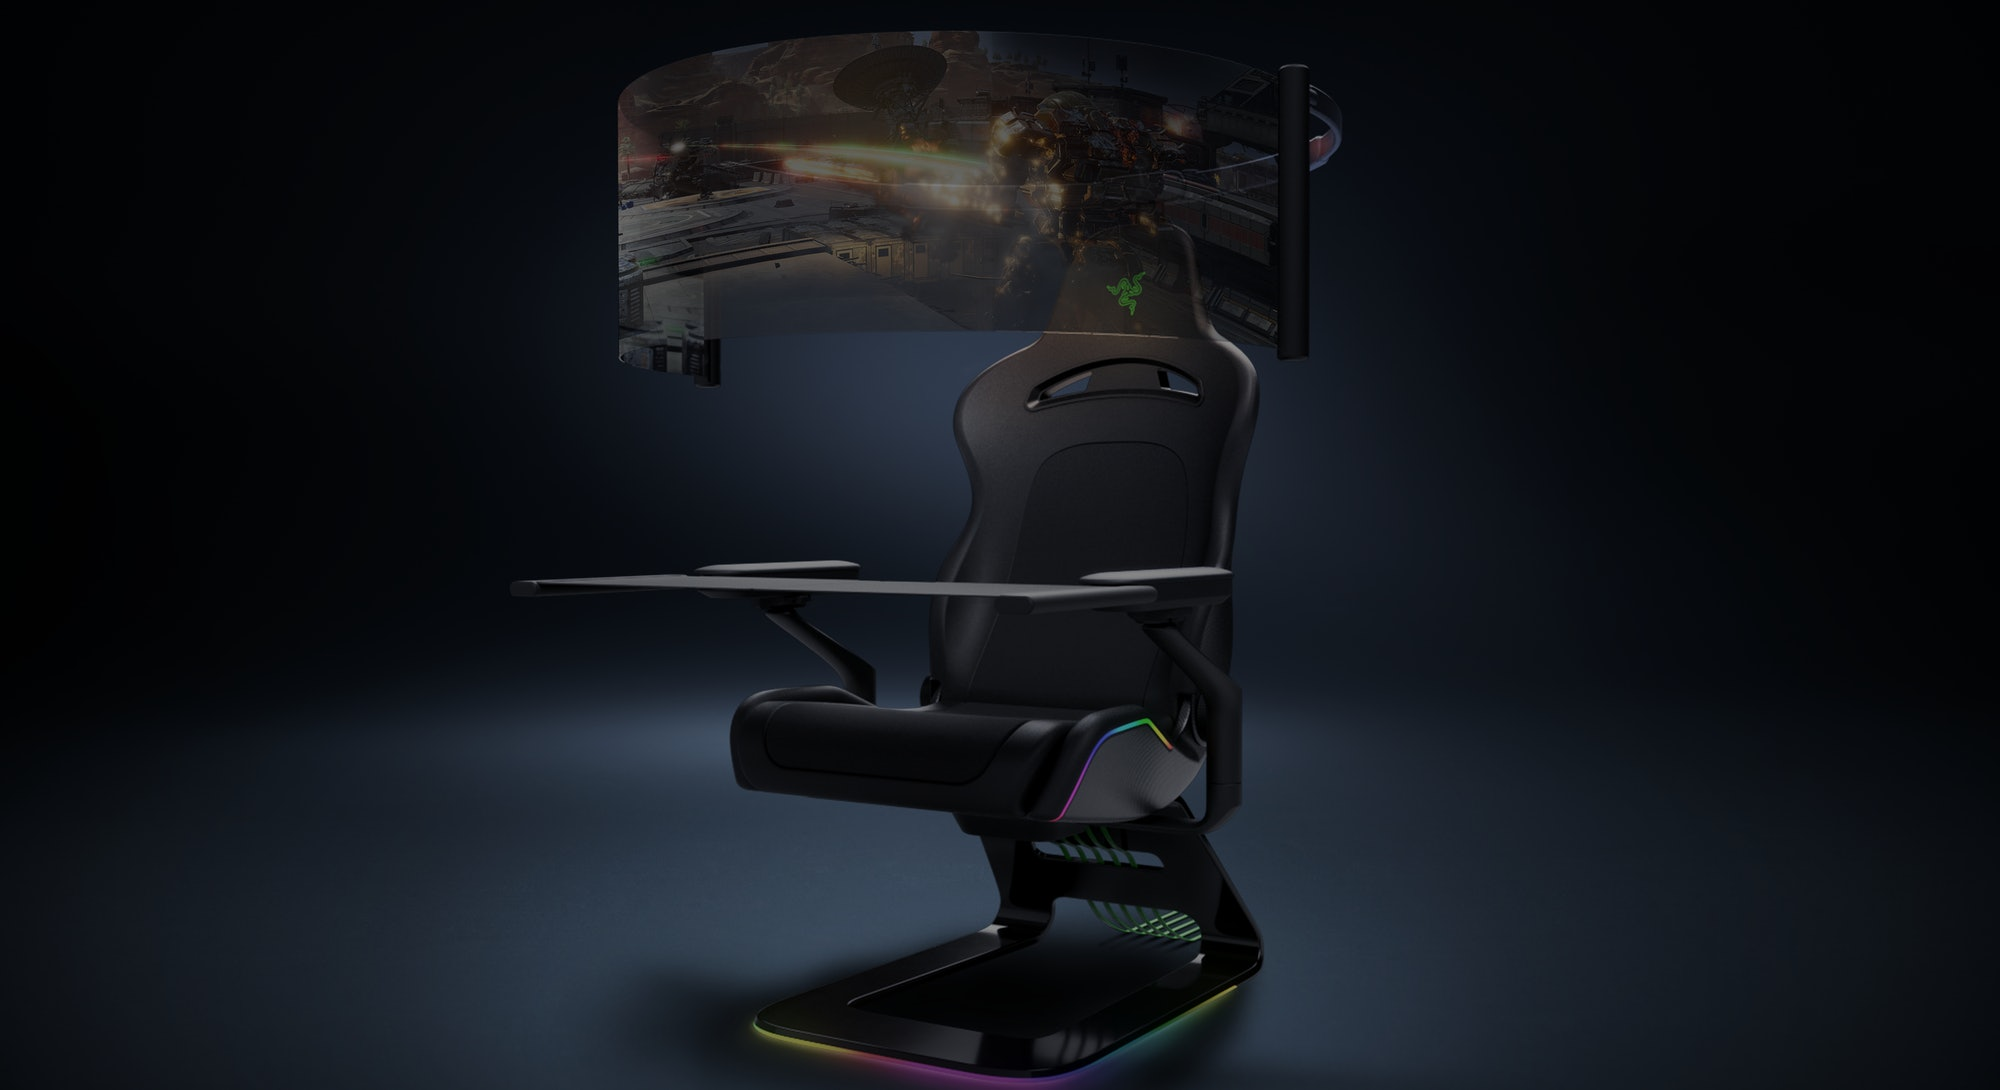 Razer's Project Brooklyn is an immersive gaming chair unveiled at CES 2021.